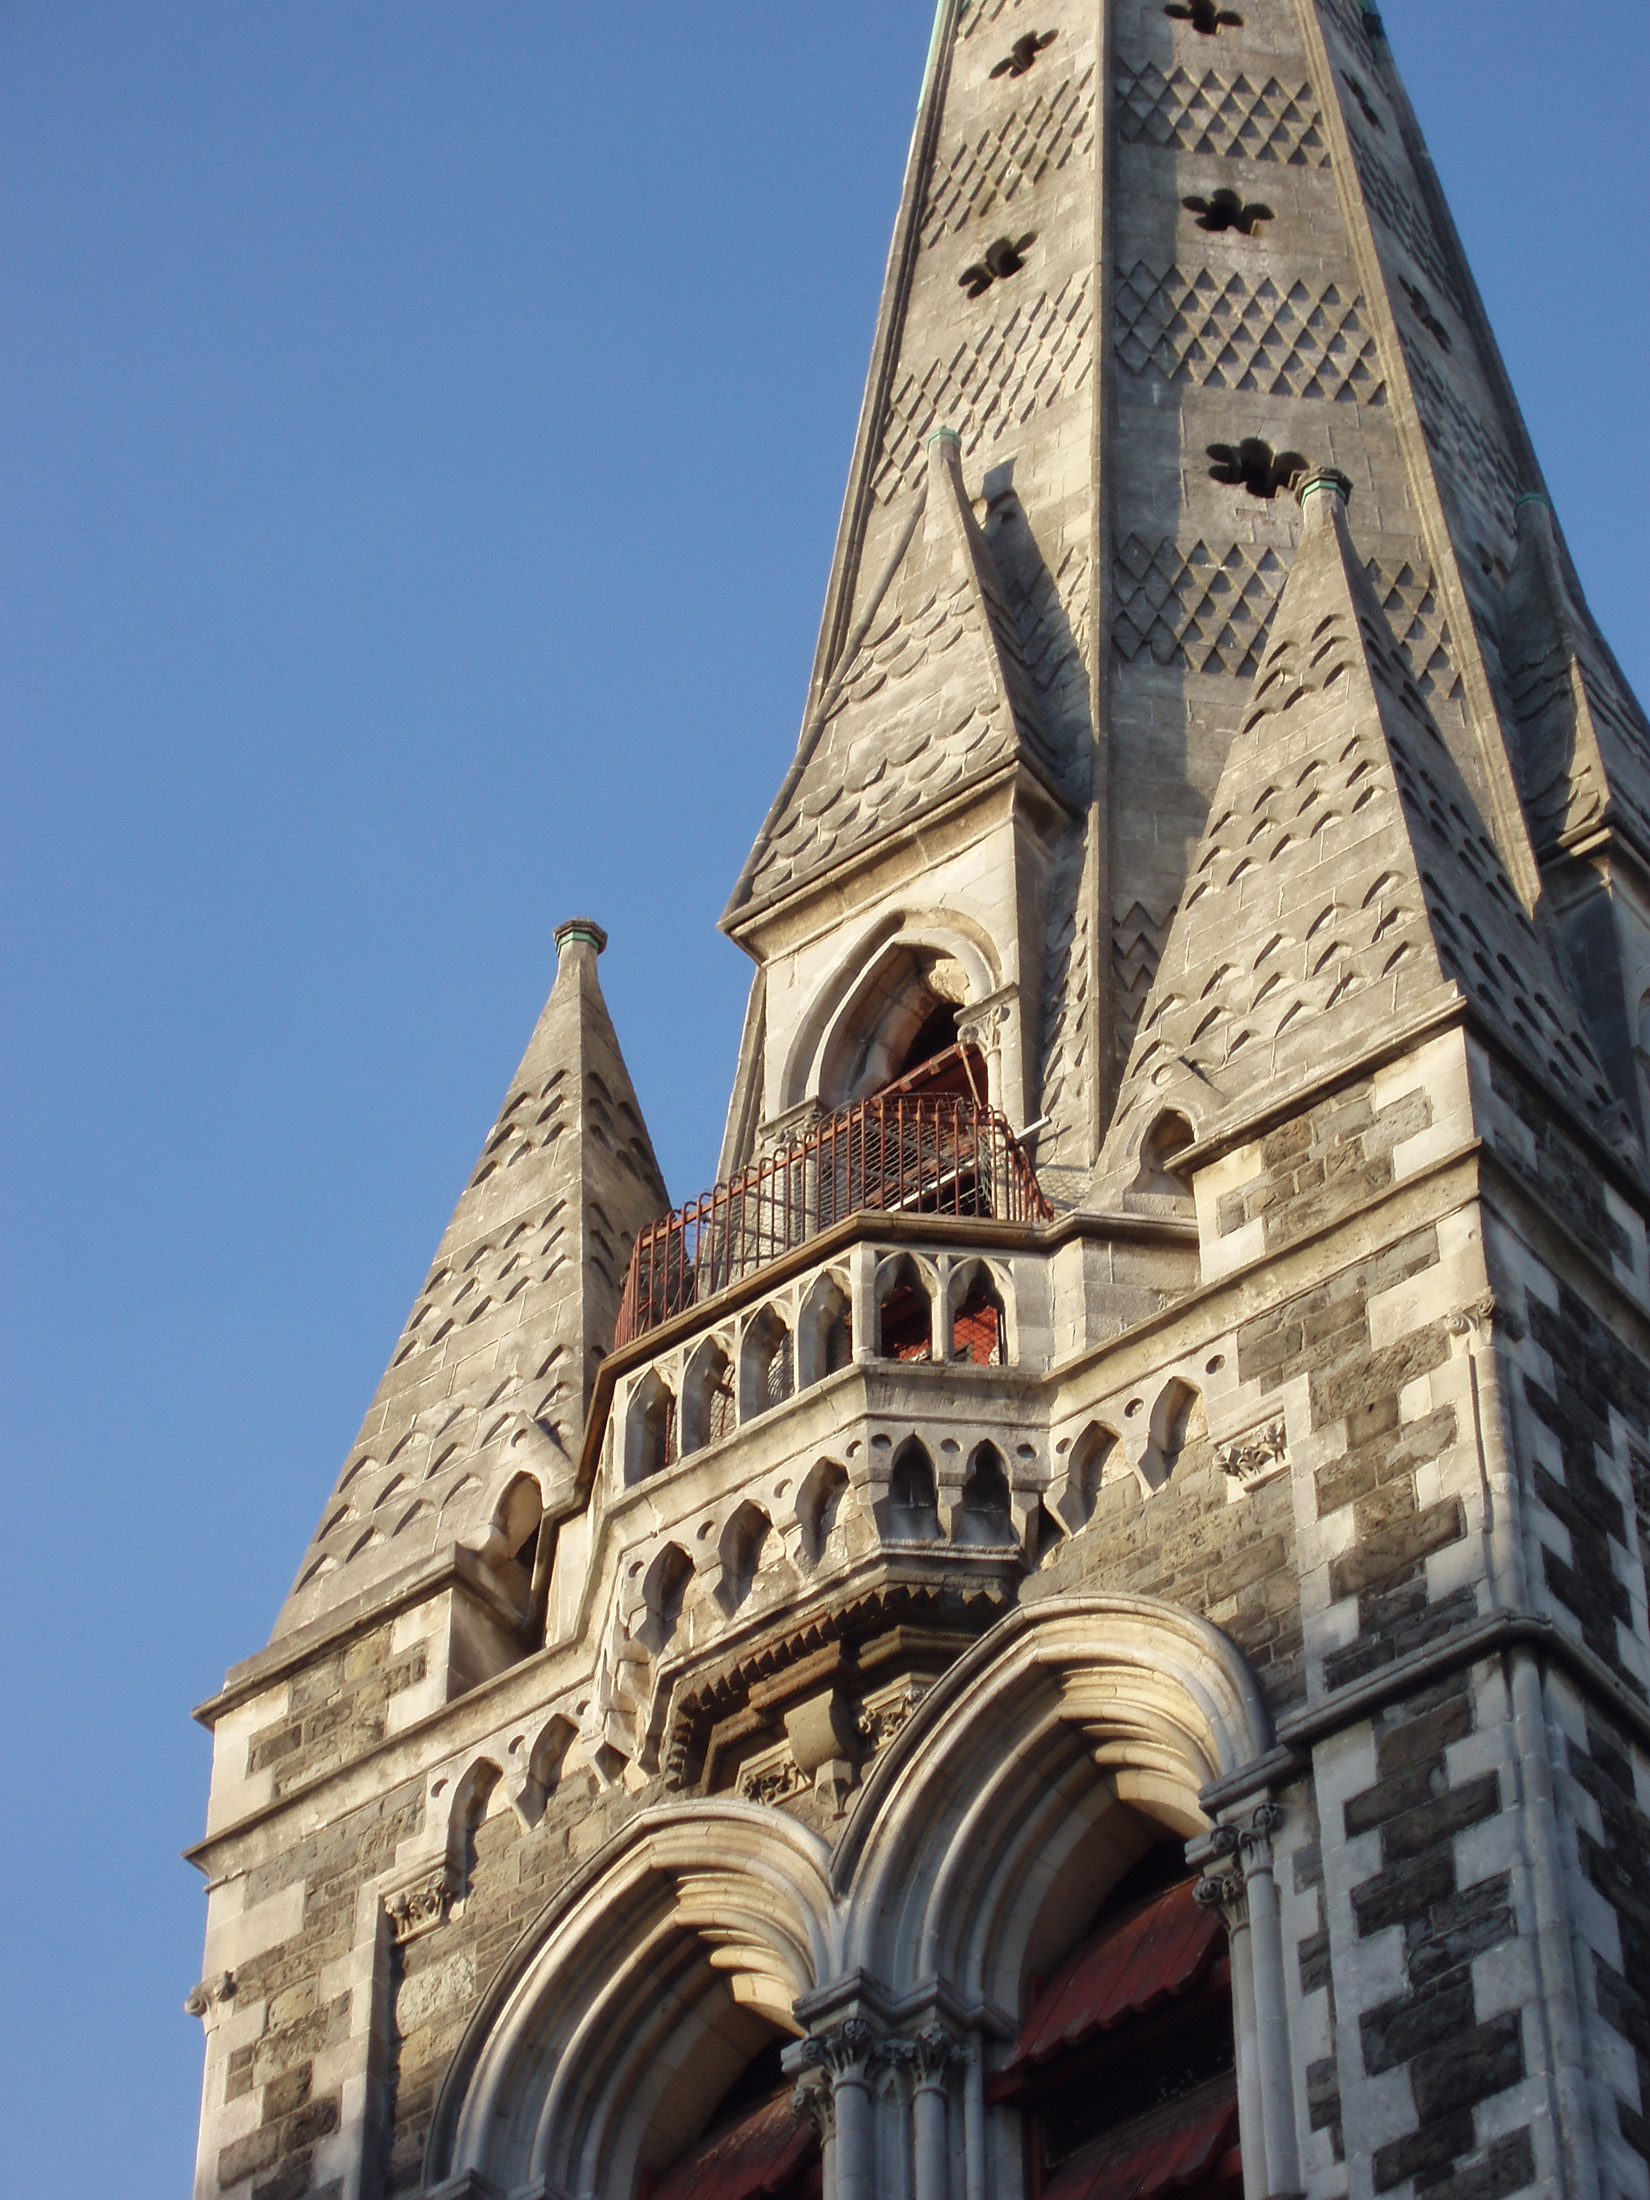 christchurch cathedral tower, newzealand, destroyed in the 2011 earthquake